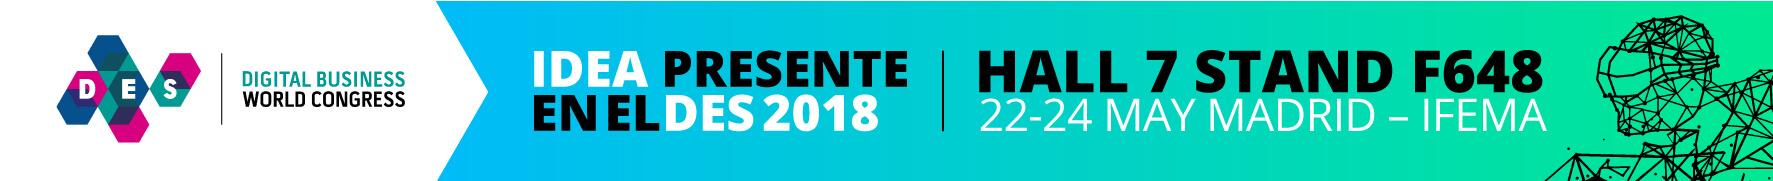 DES Madrid 2018 - IDEA Ingeniería